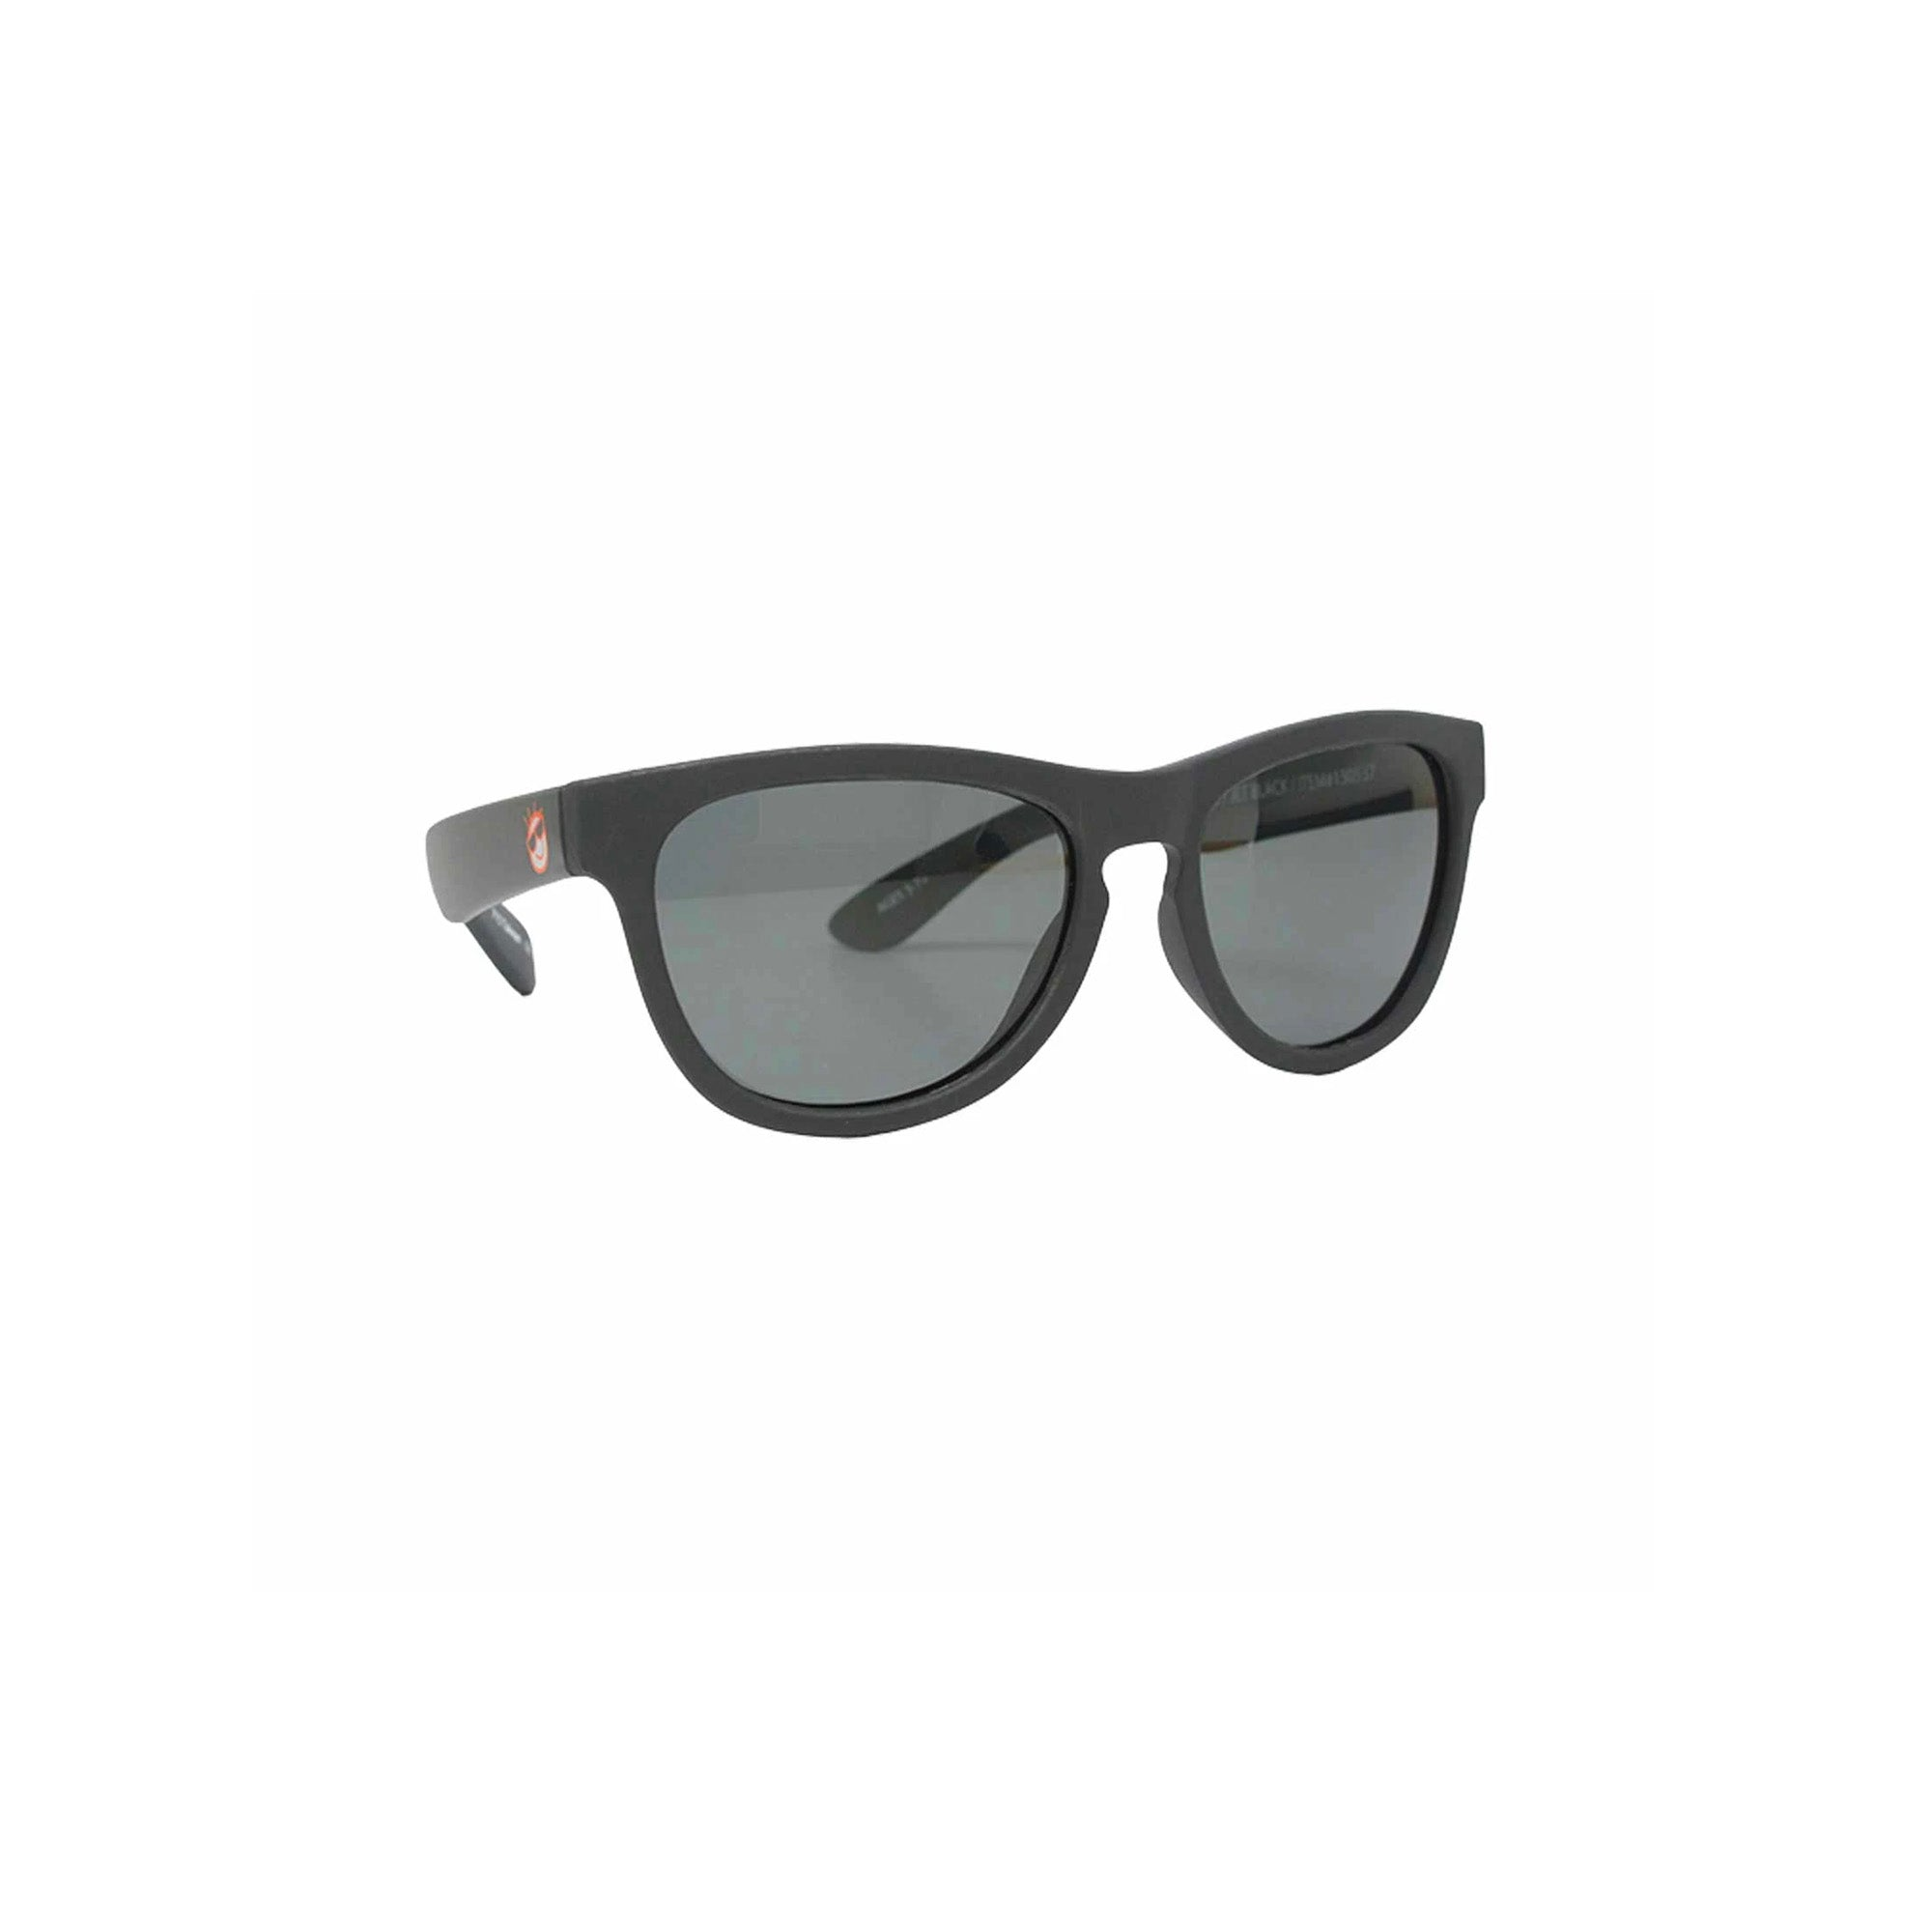 Mini Shades Classic Kid's Polarized Sunglasses (Ages 3-7) - Jet Black